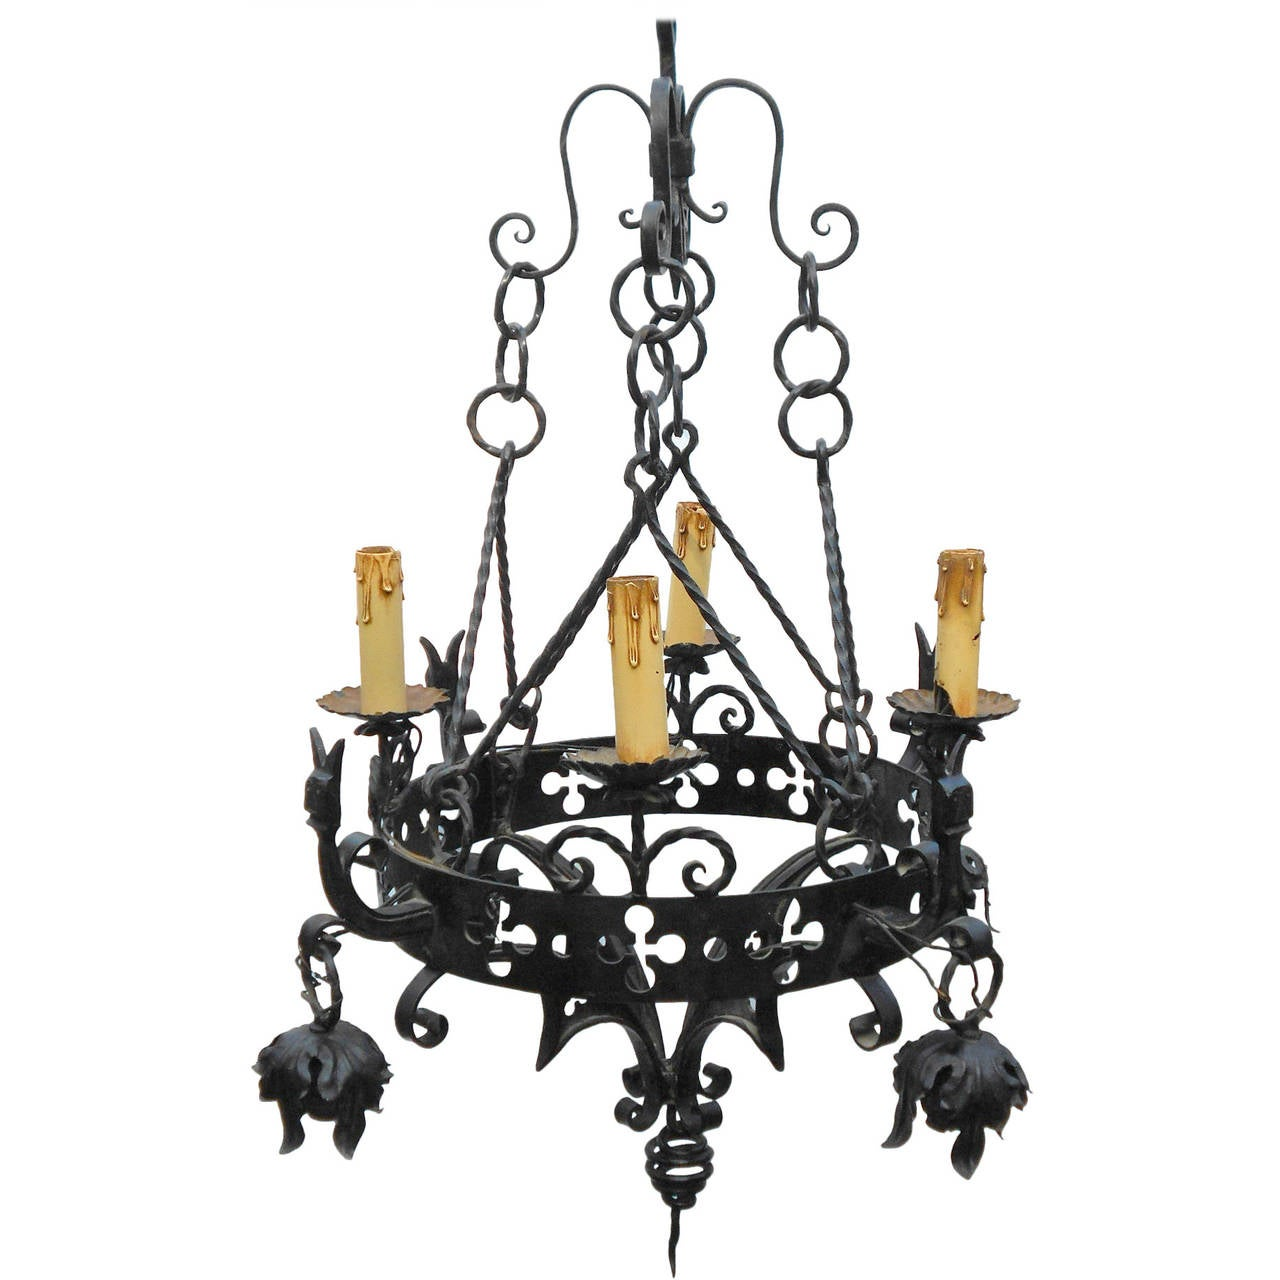 gothic iron chandelier with horned faces for sale at 1stdibs